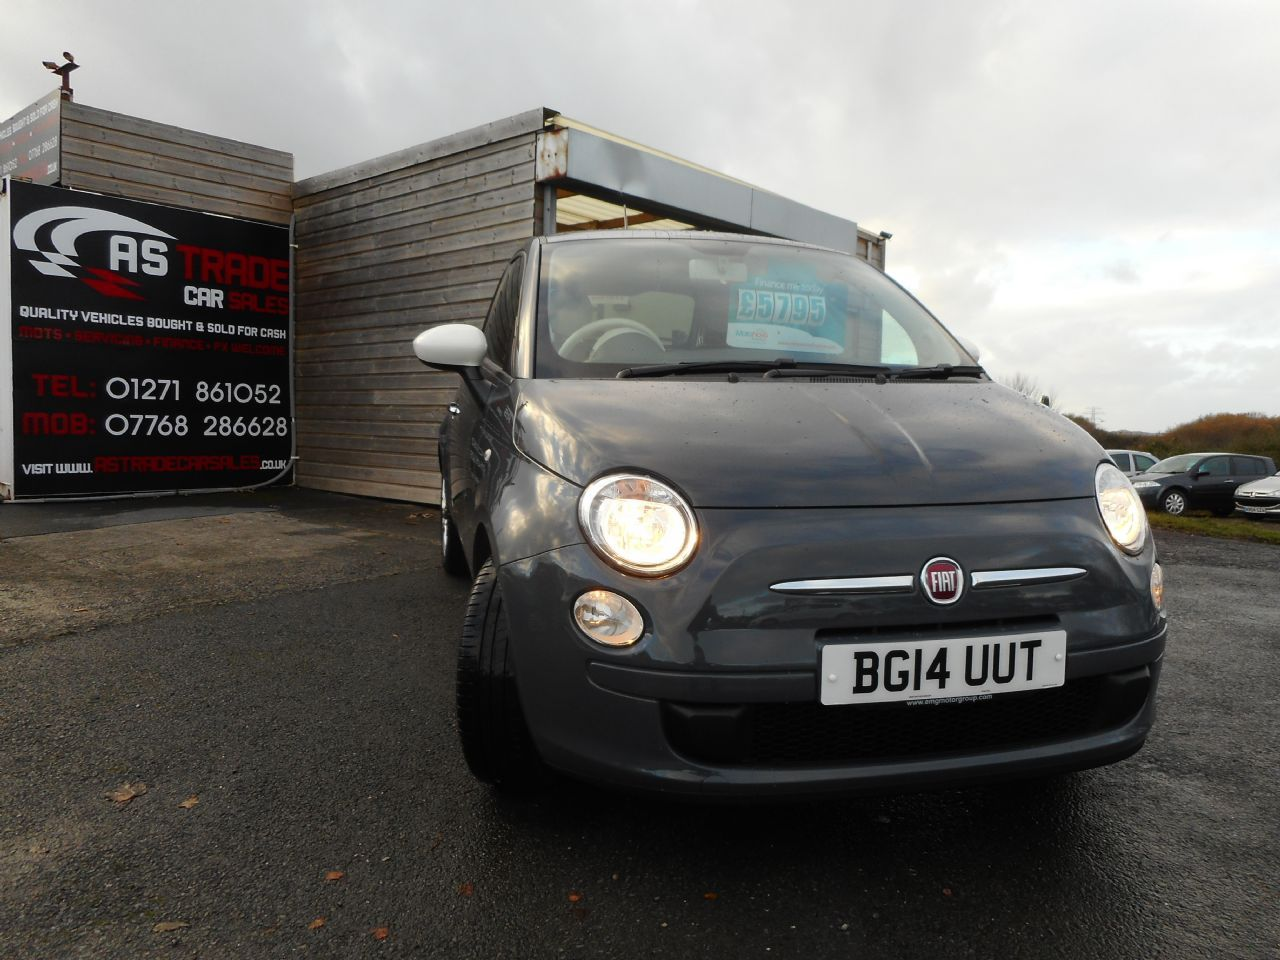 FIAT 500 1.2i Colour Therapy S/S - Picture 1